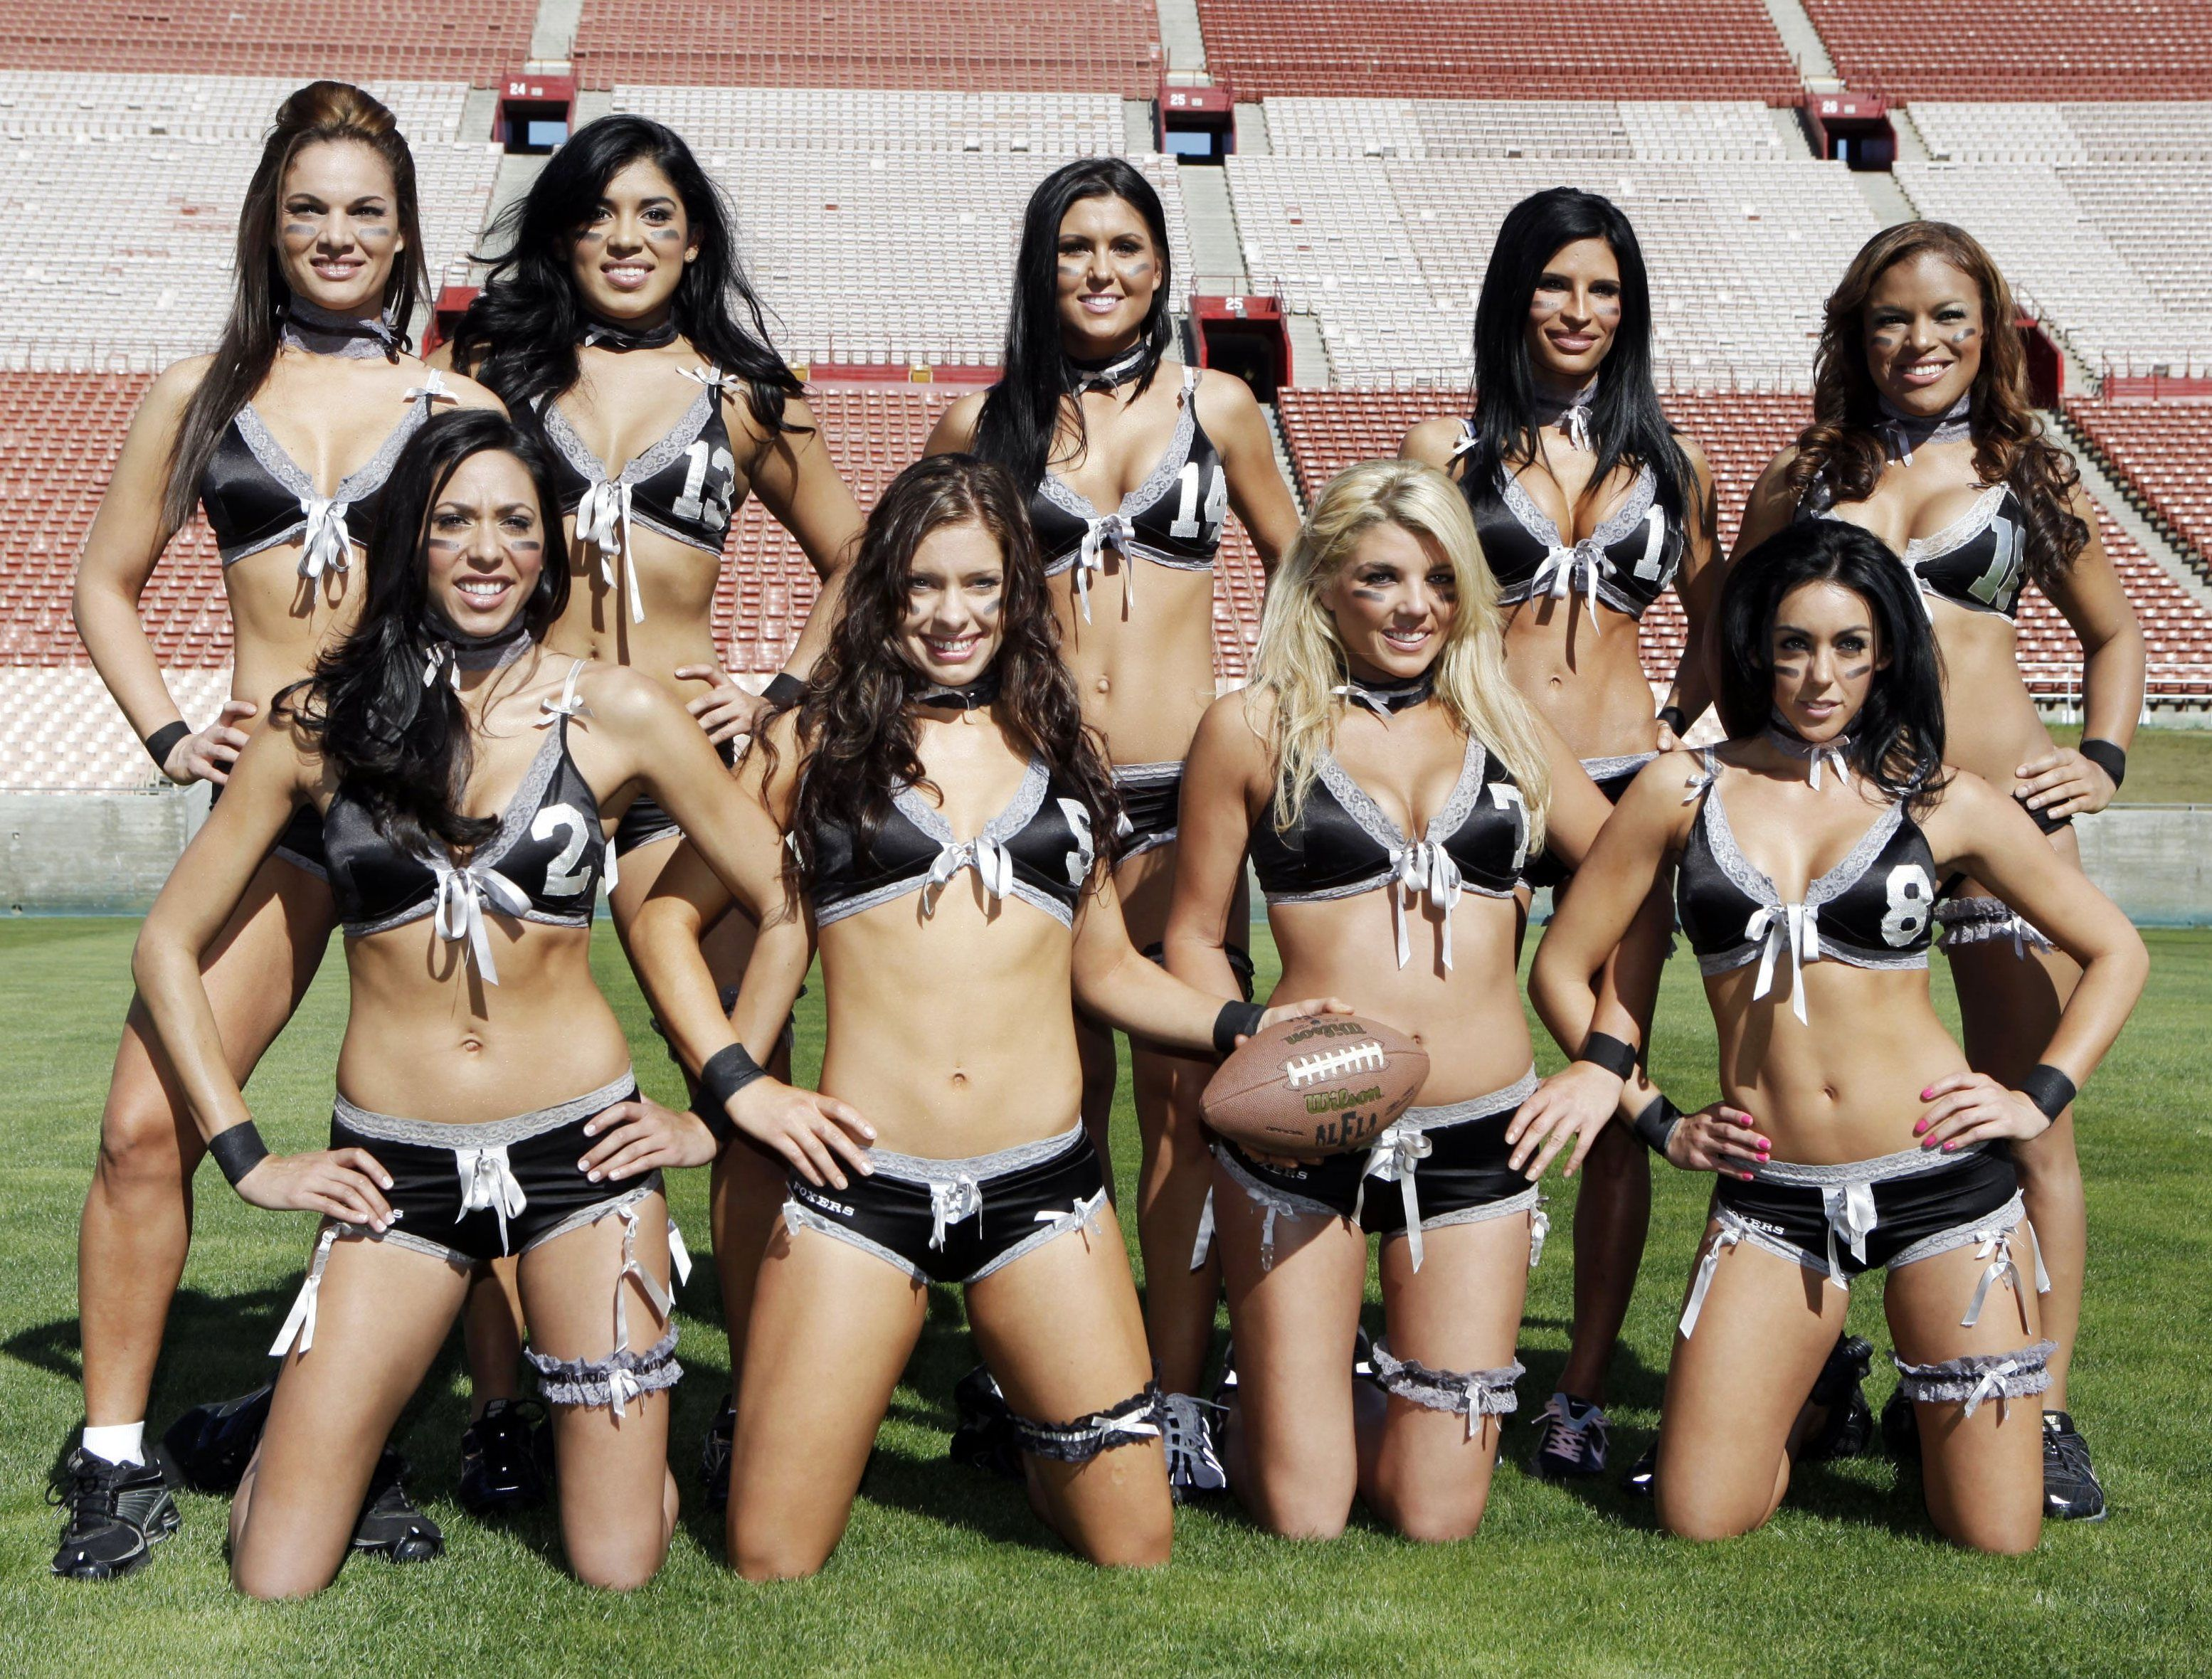 Hottest ipl cheerleaders